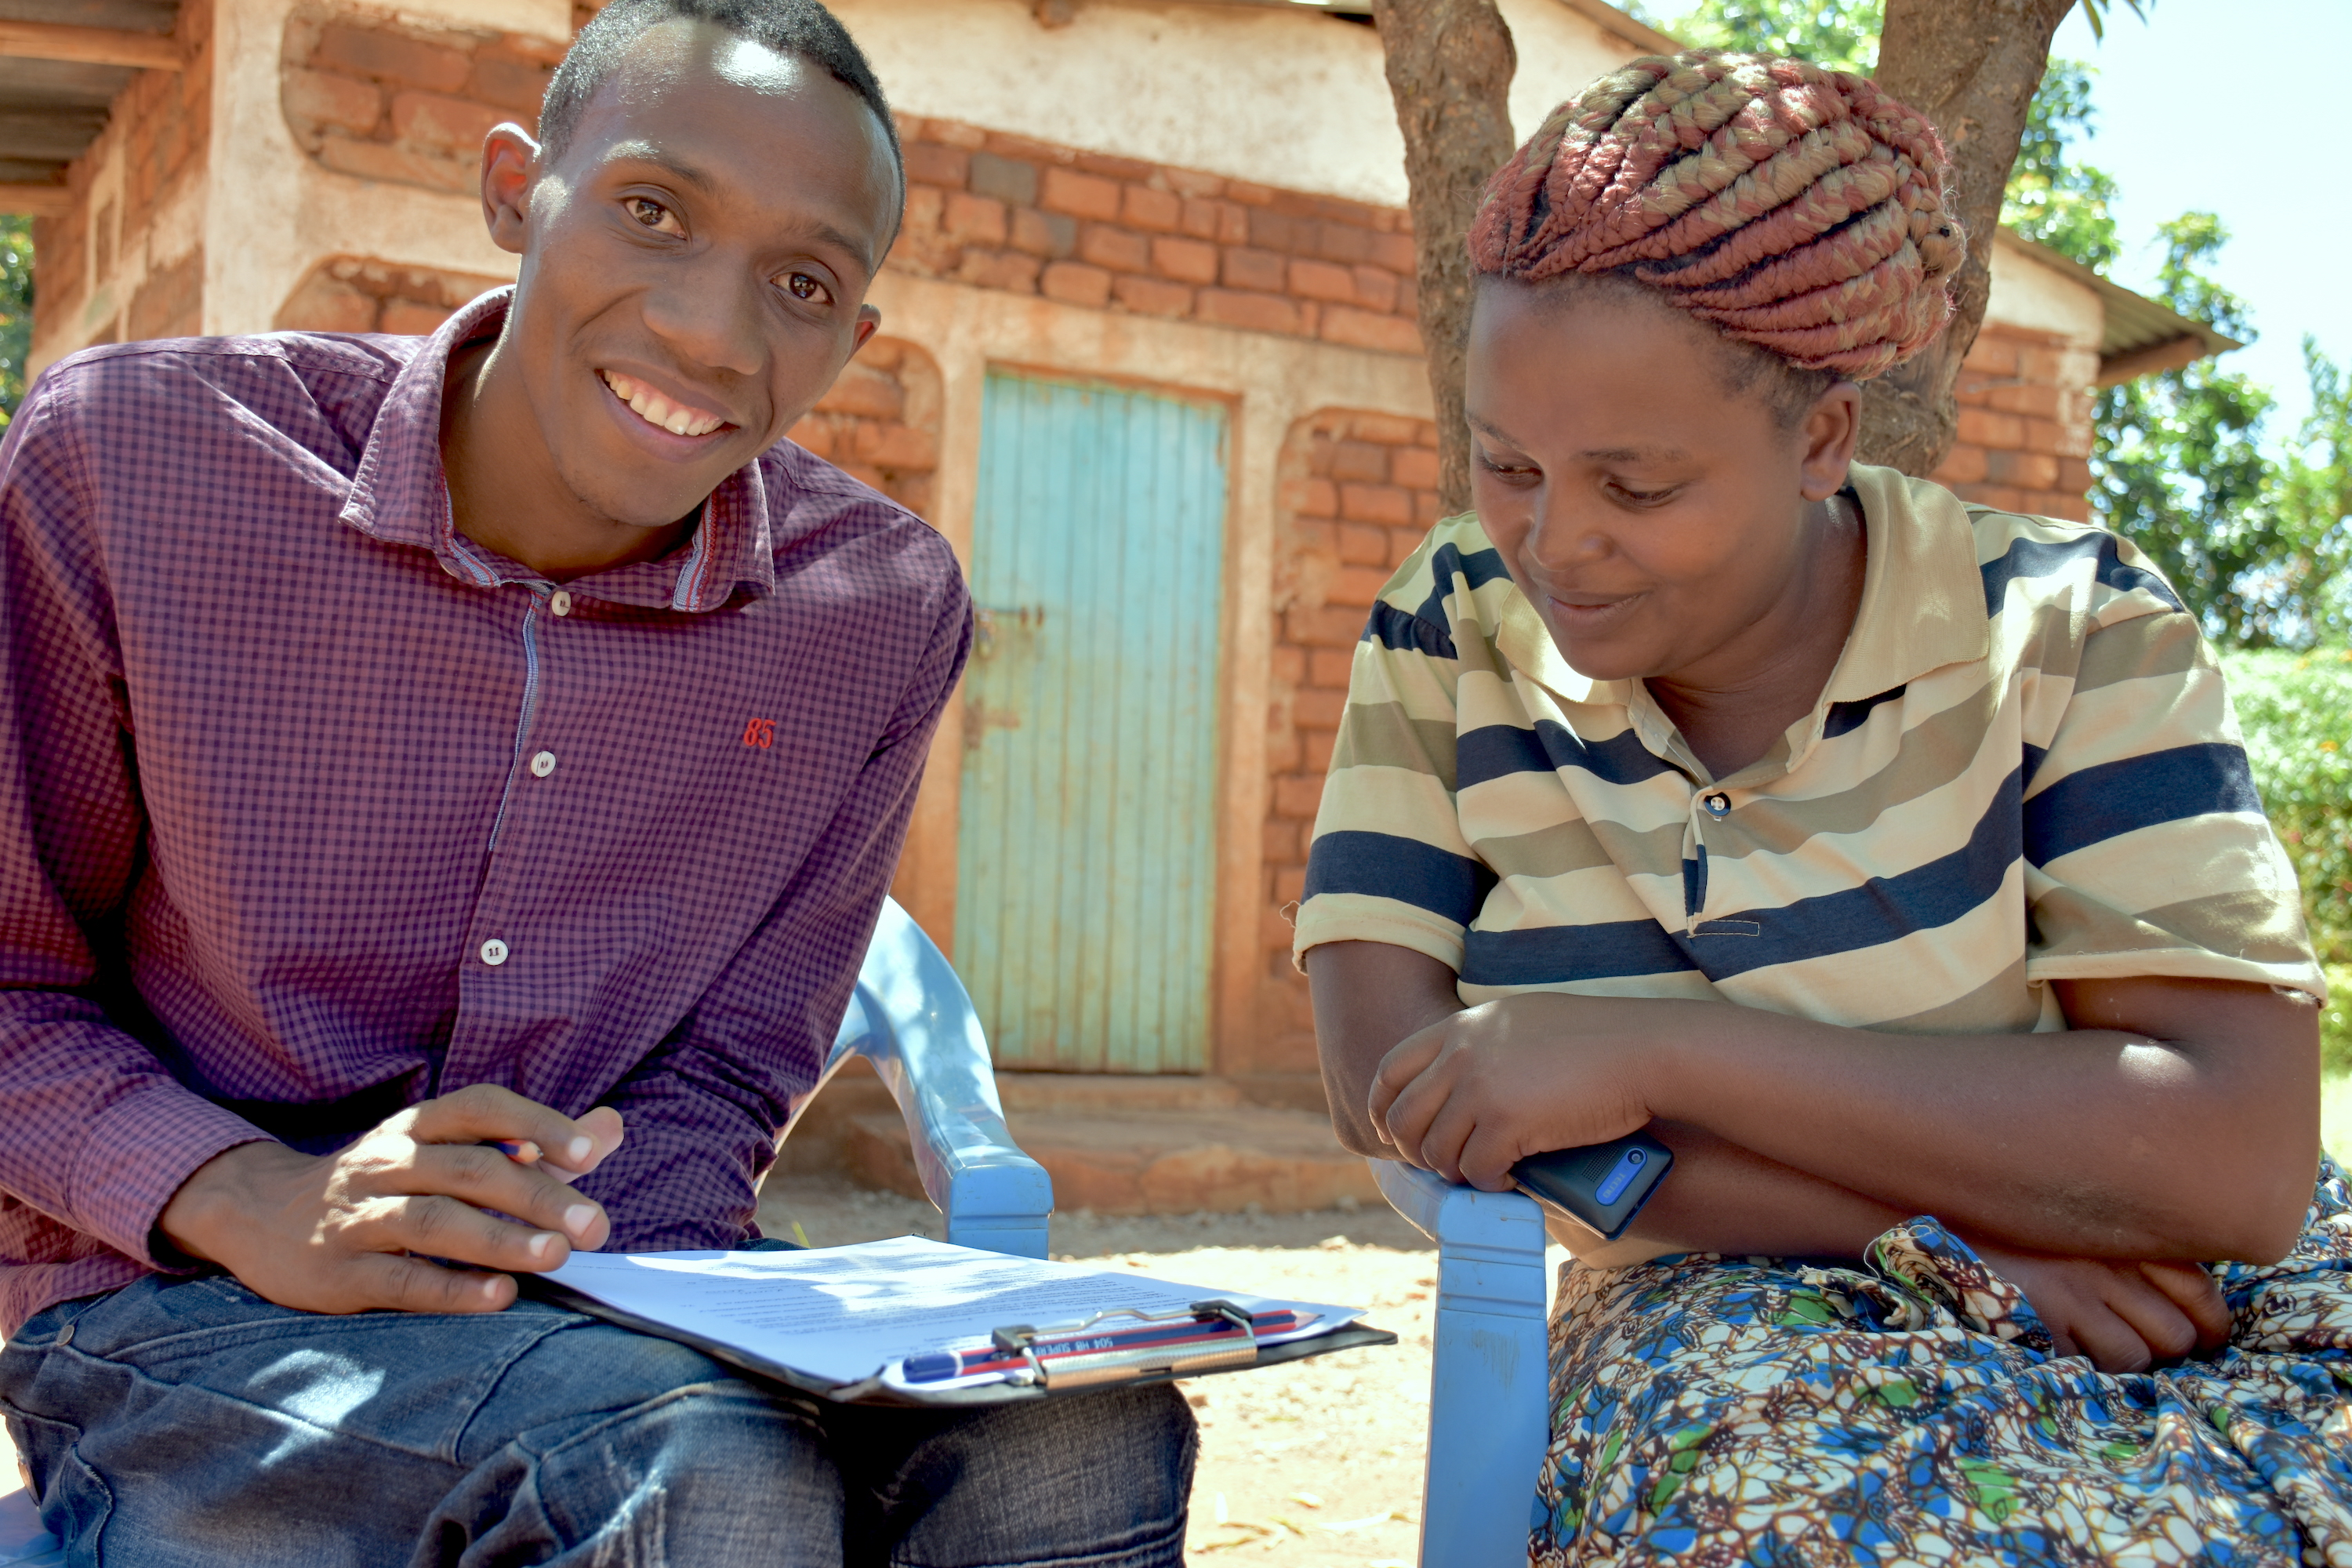 An enumerator (left) collects a farmer's details and socioeconomic data before she participates in the evaluation of maize varieties. (Photo: Joshua Masinde/CIMMYT)